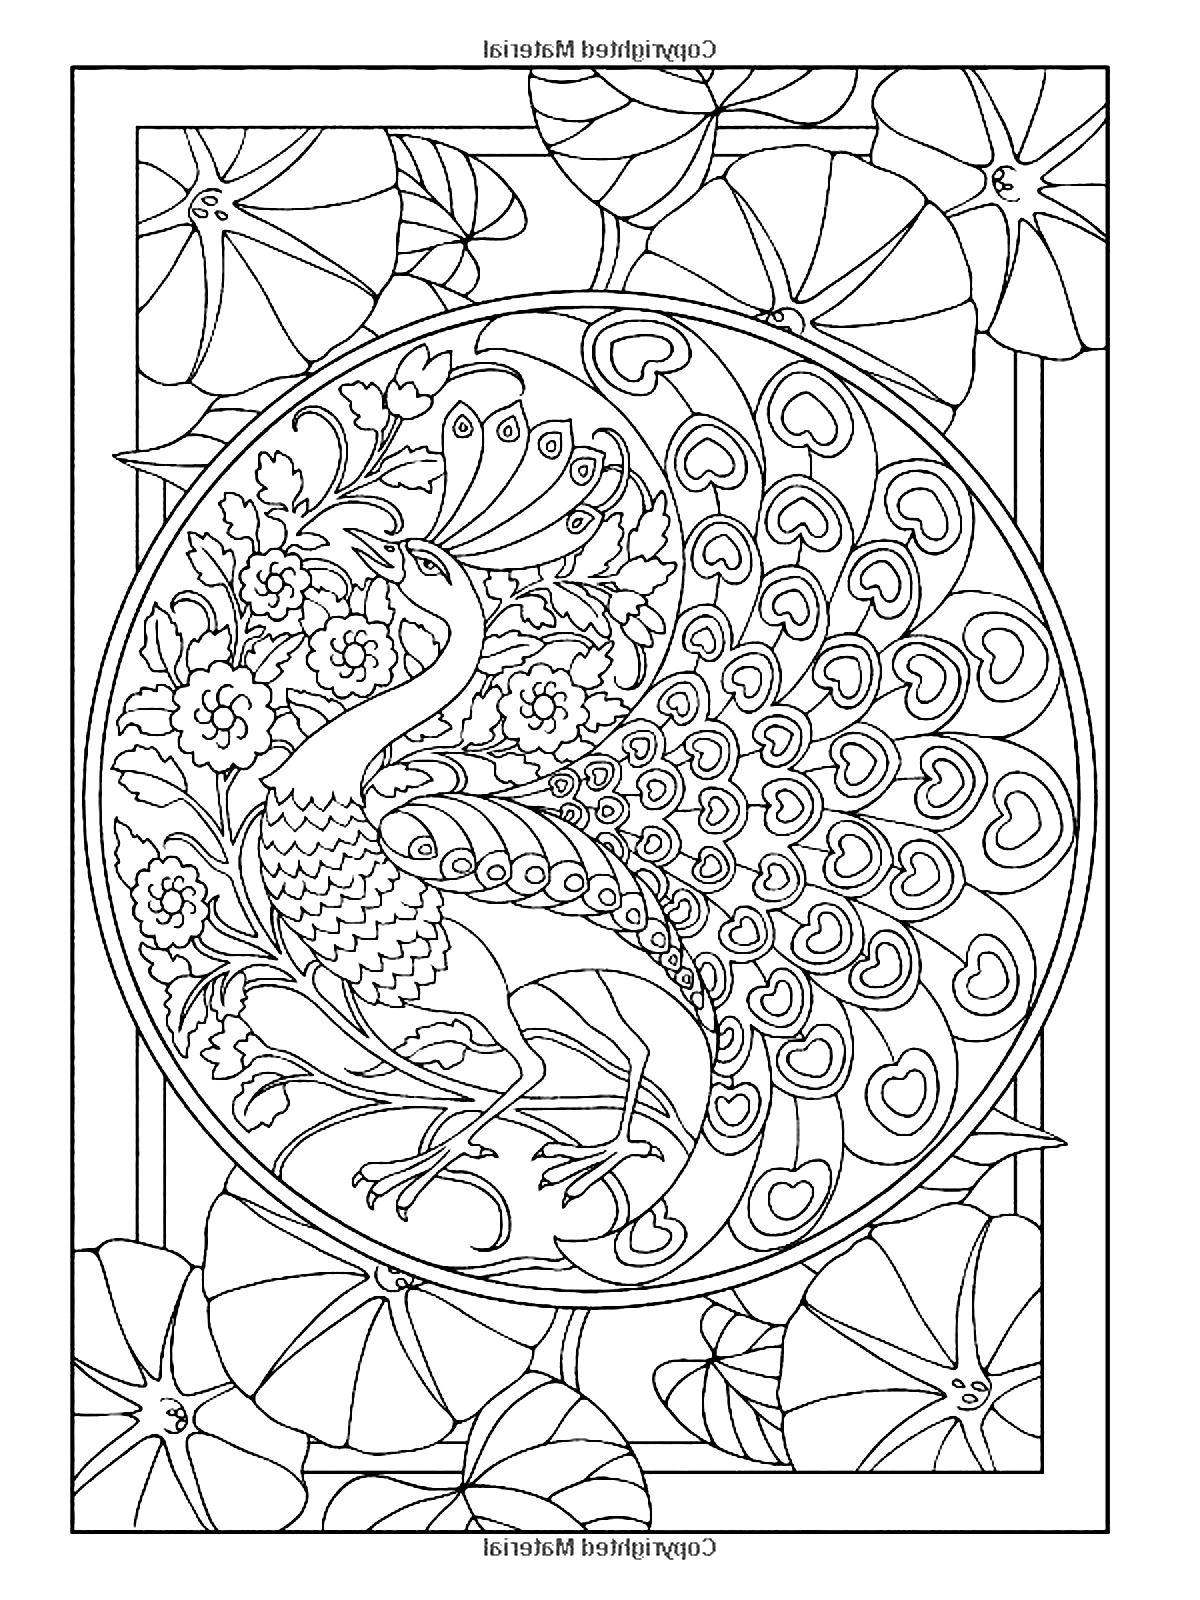 art nouveau coloring pages - photo#29